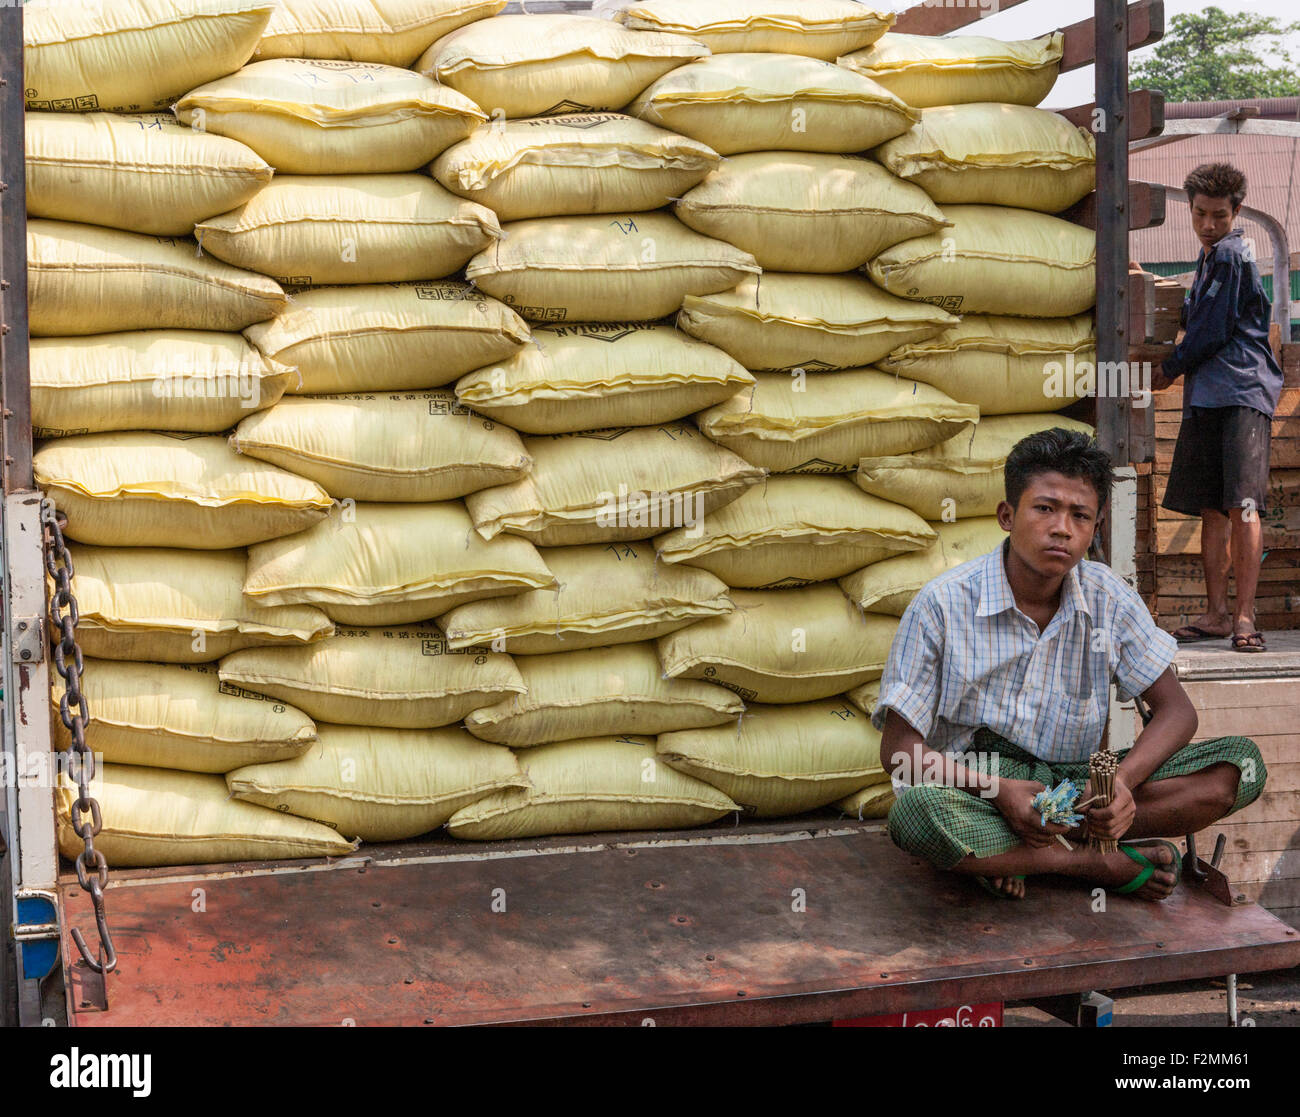 Truck full of rice sacks at Port of Yangon with longshoreman sitting on tailgate holding tally sticks - Stock Image